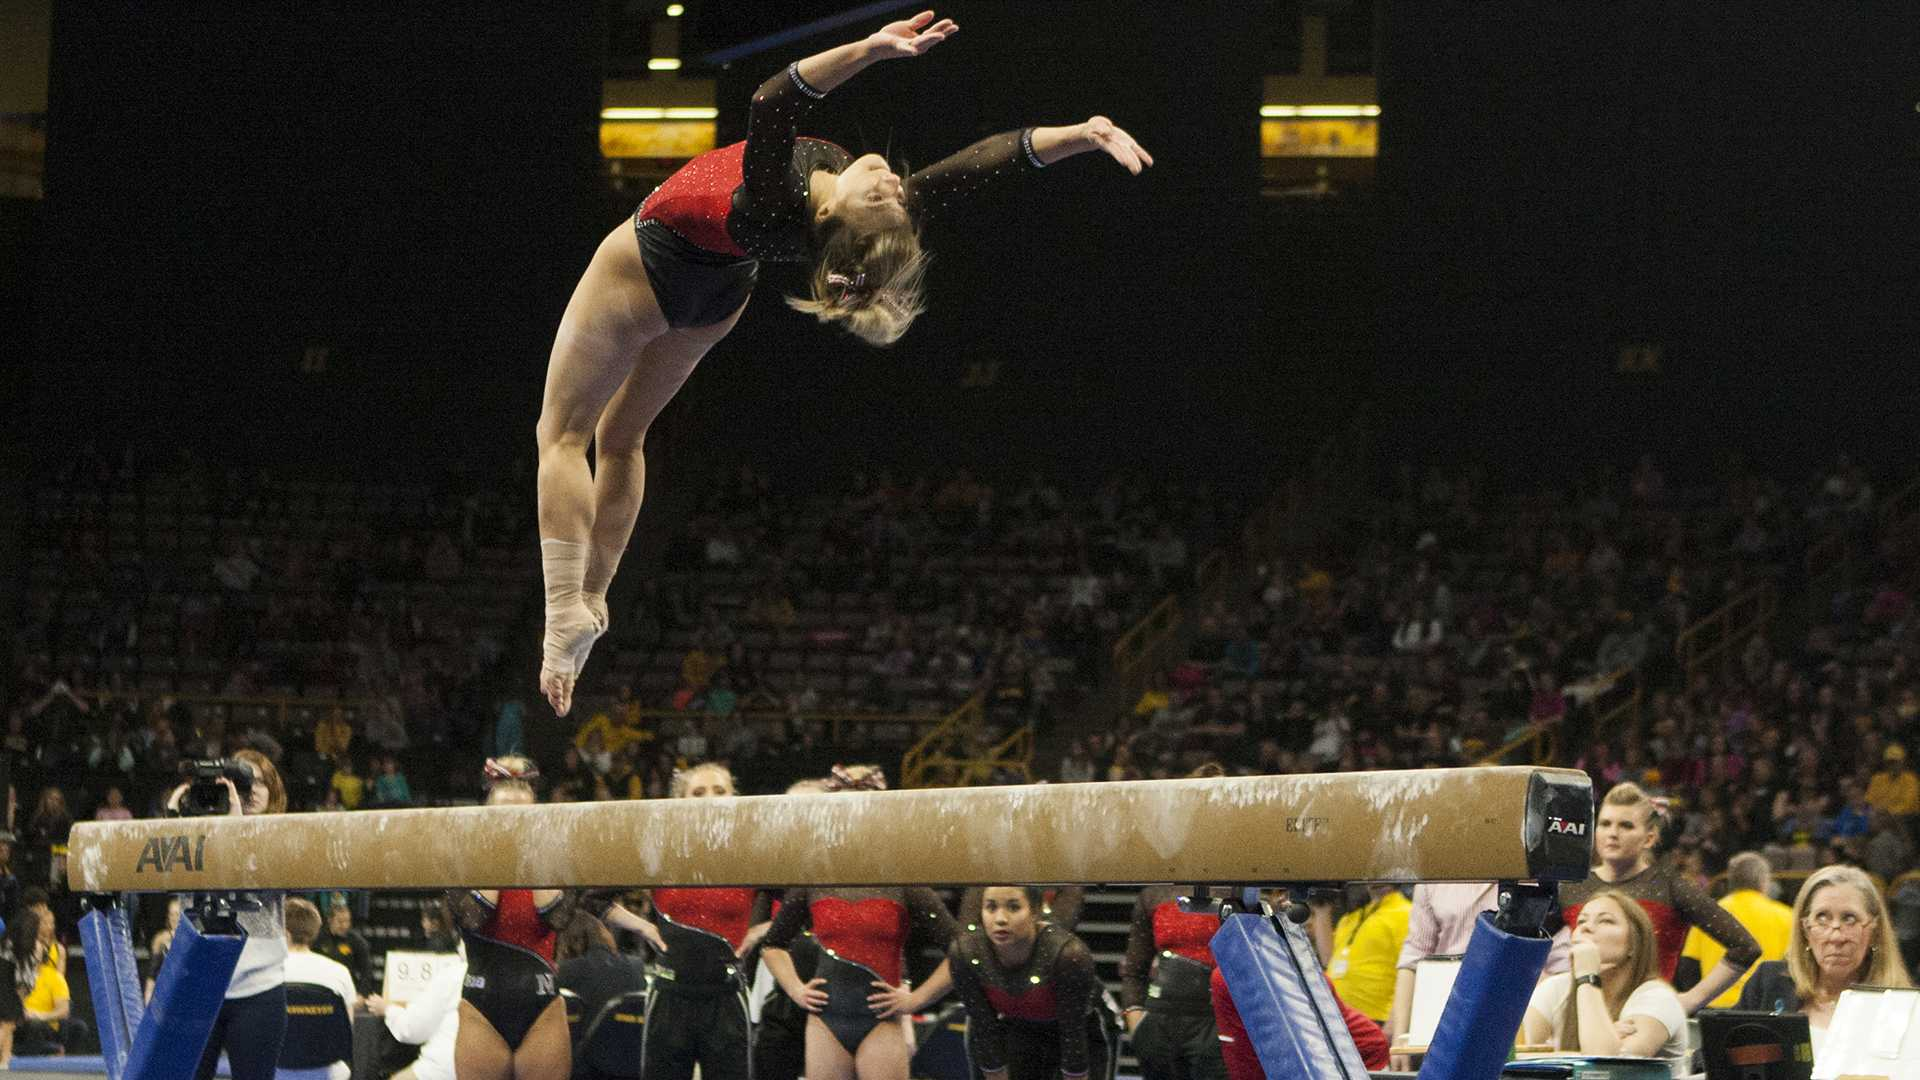 Nebraska's Megan Schweihofer performs on beam during the Iowa/Nebraska meet at Carver-Hawkeye Arena on Saturday, Feb. 10, 2018. The Cornhuskers defeated the Hawkeyes with 195.675 to 194.900.  (Ashley Morris/The Daily Iowan)